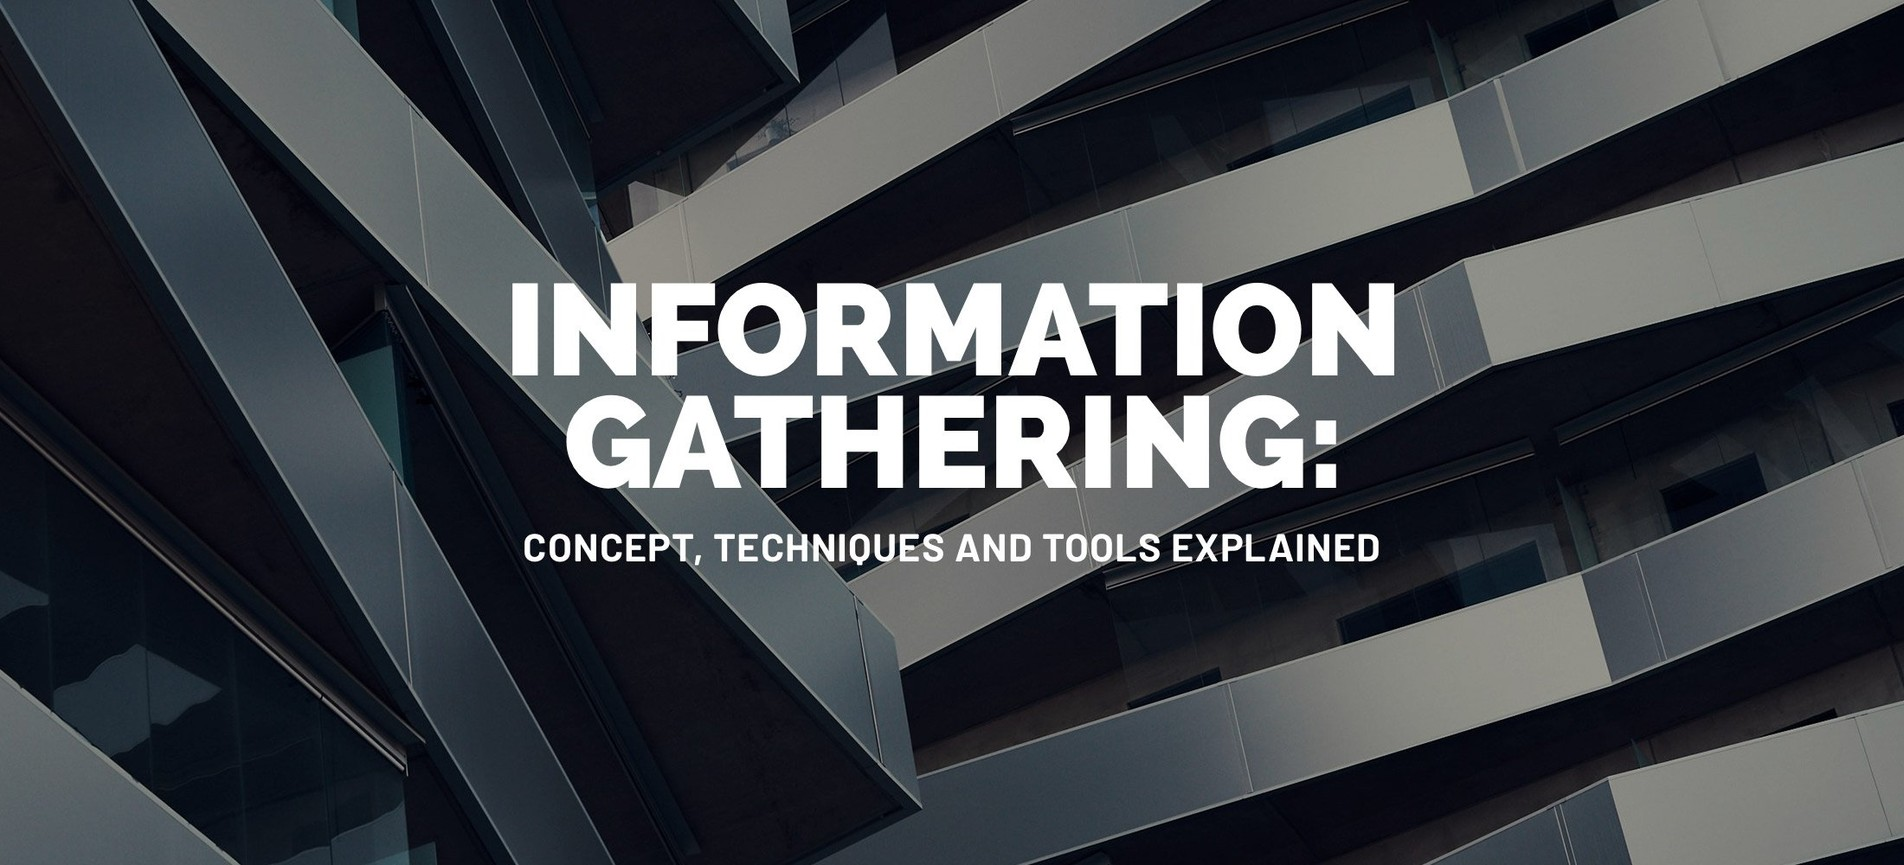 Information Gathering: Concept, Techniques and Tools explained.